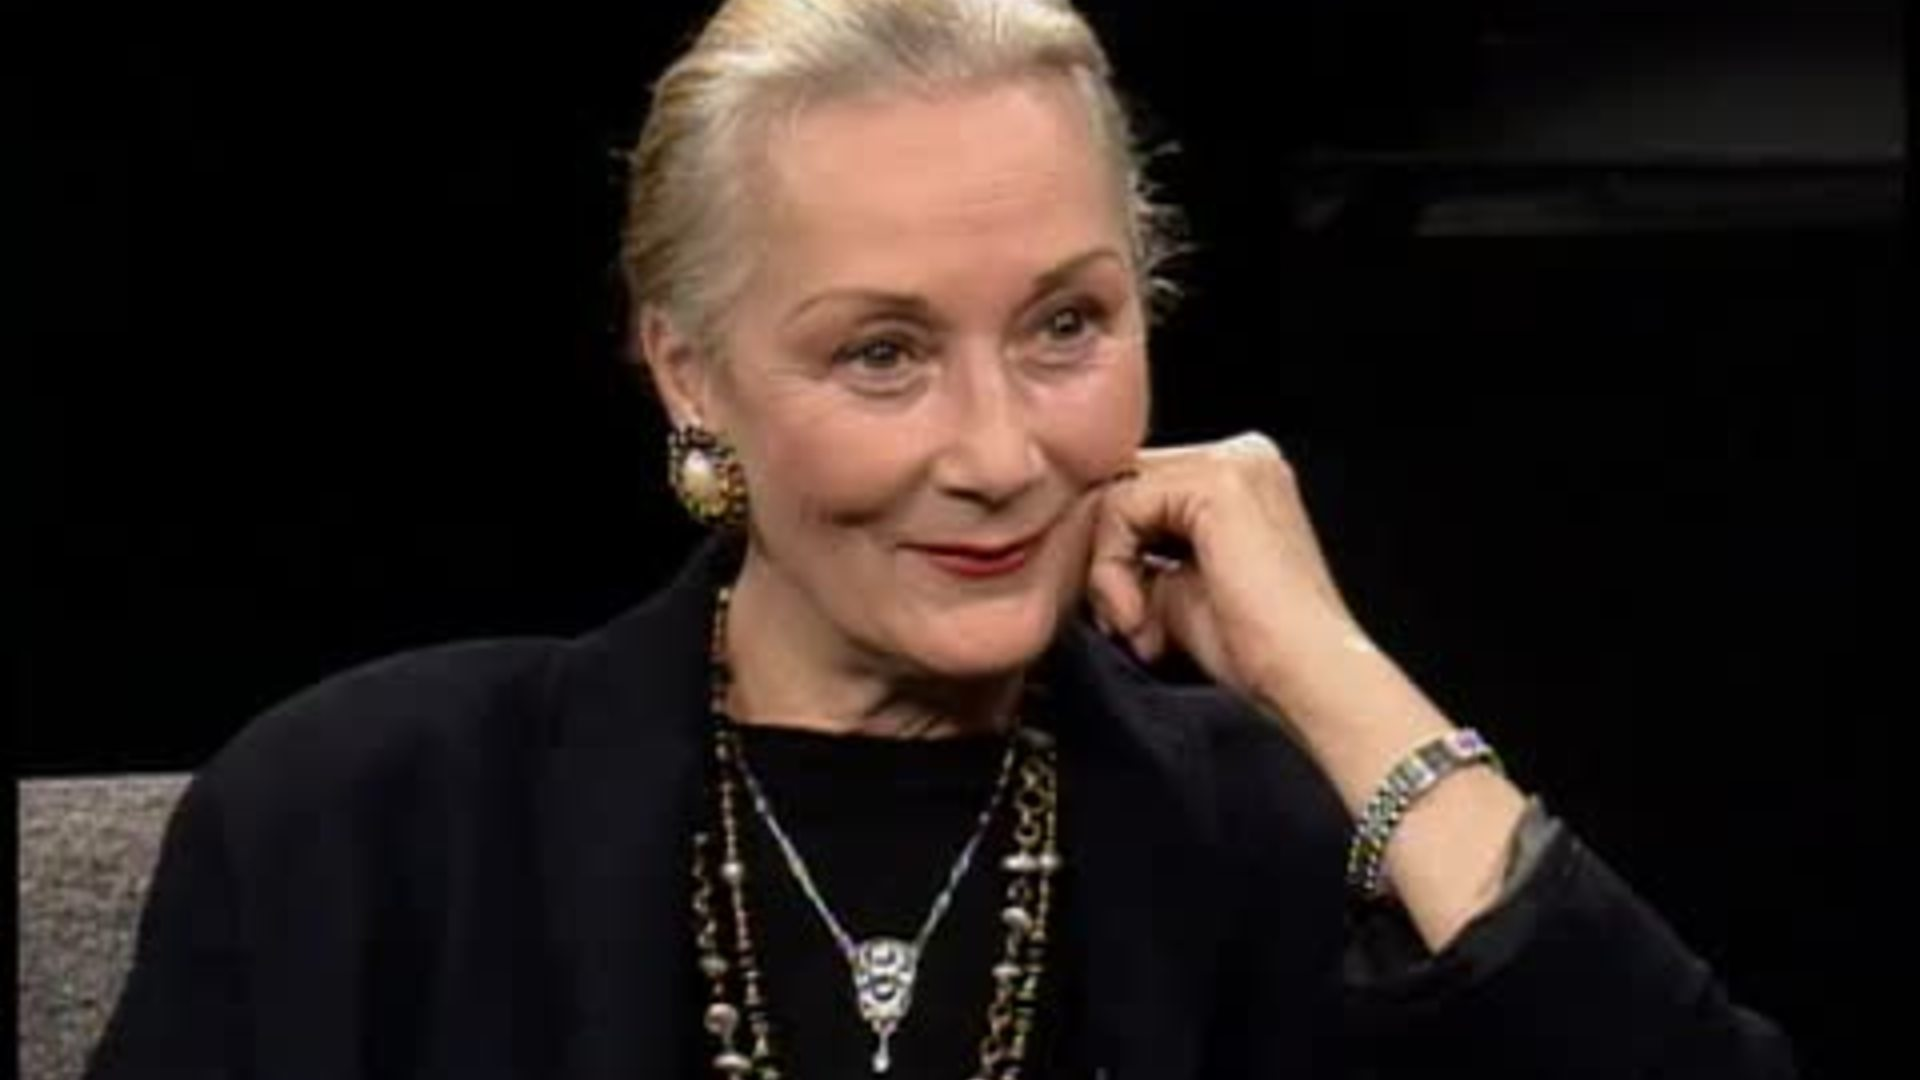 Rosemary Harris Rosemary Harris new pictures